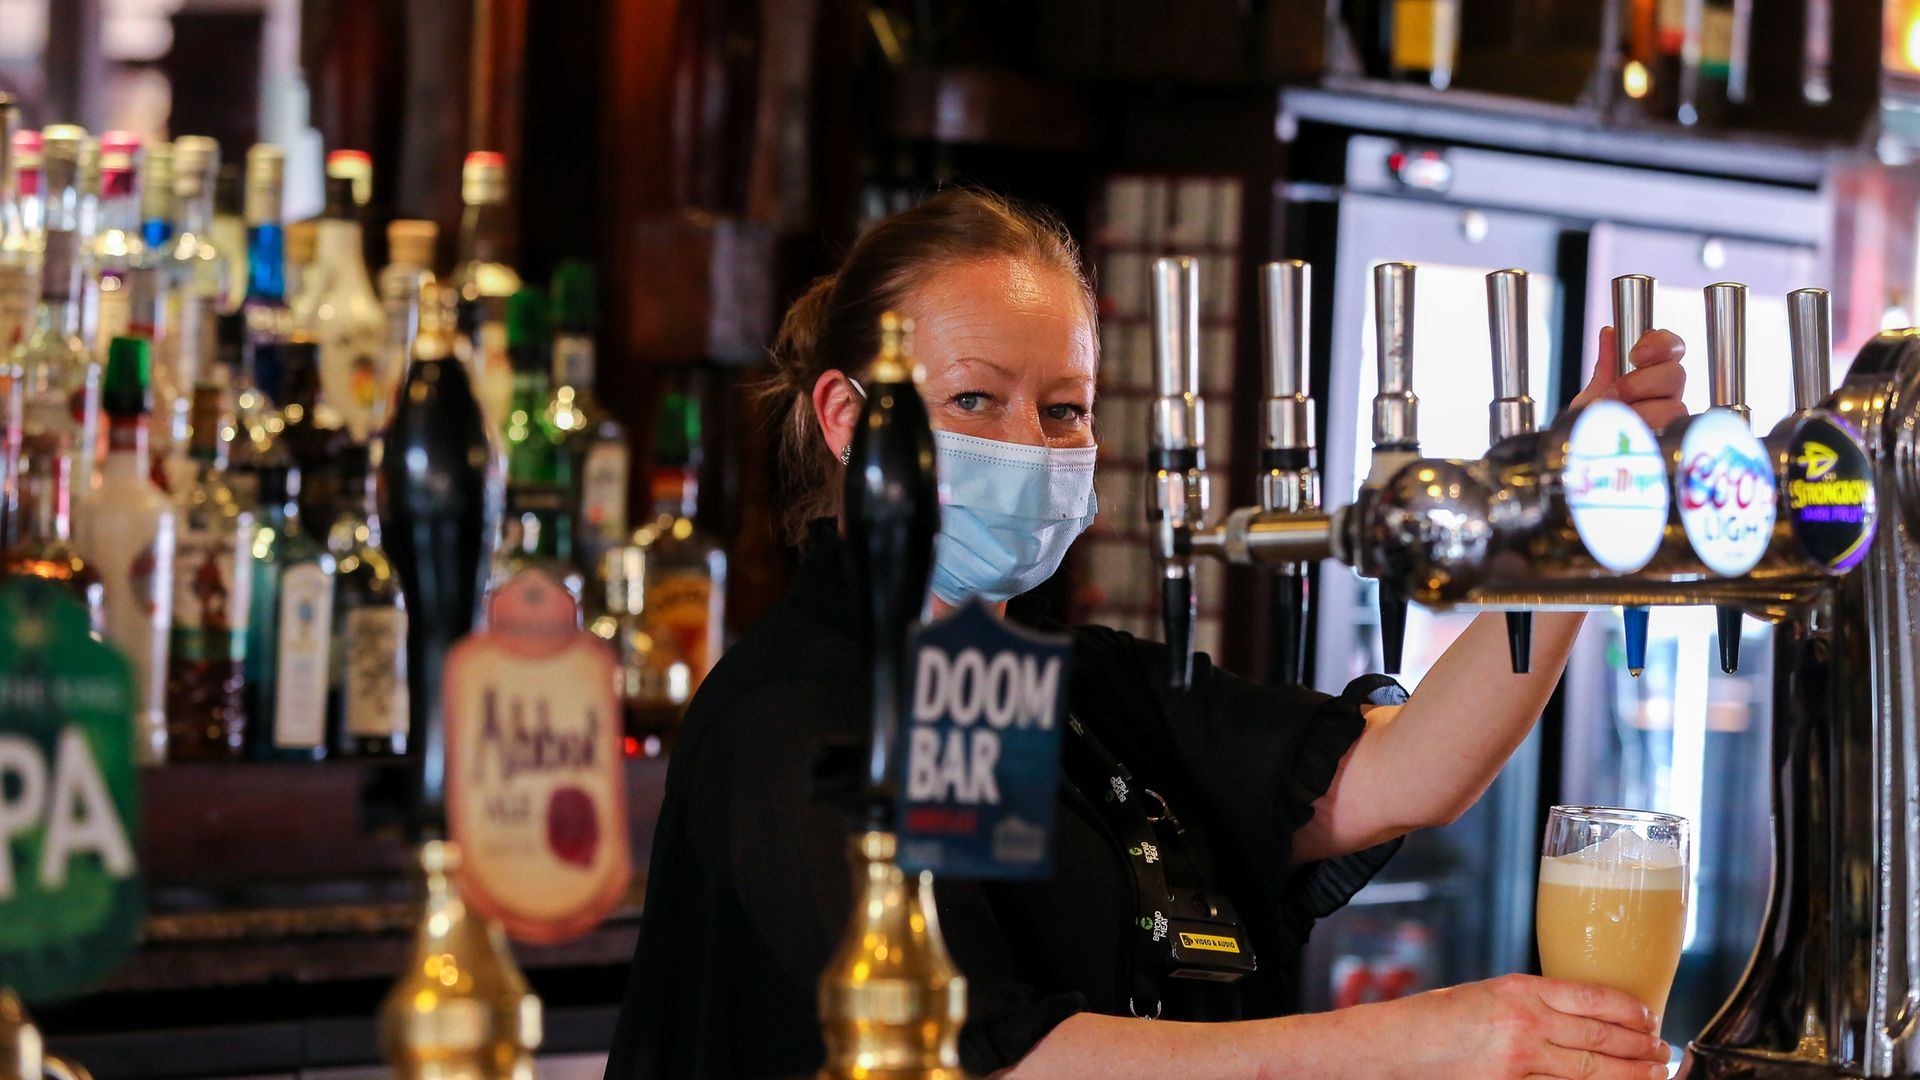 A bar worker pulls a pint for a customer; many pubs are facing a staff shortage - Credit: Dinendra Haria/SOPA Images/LightRocket via Getty